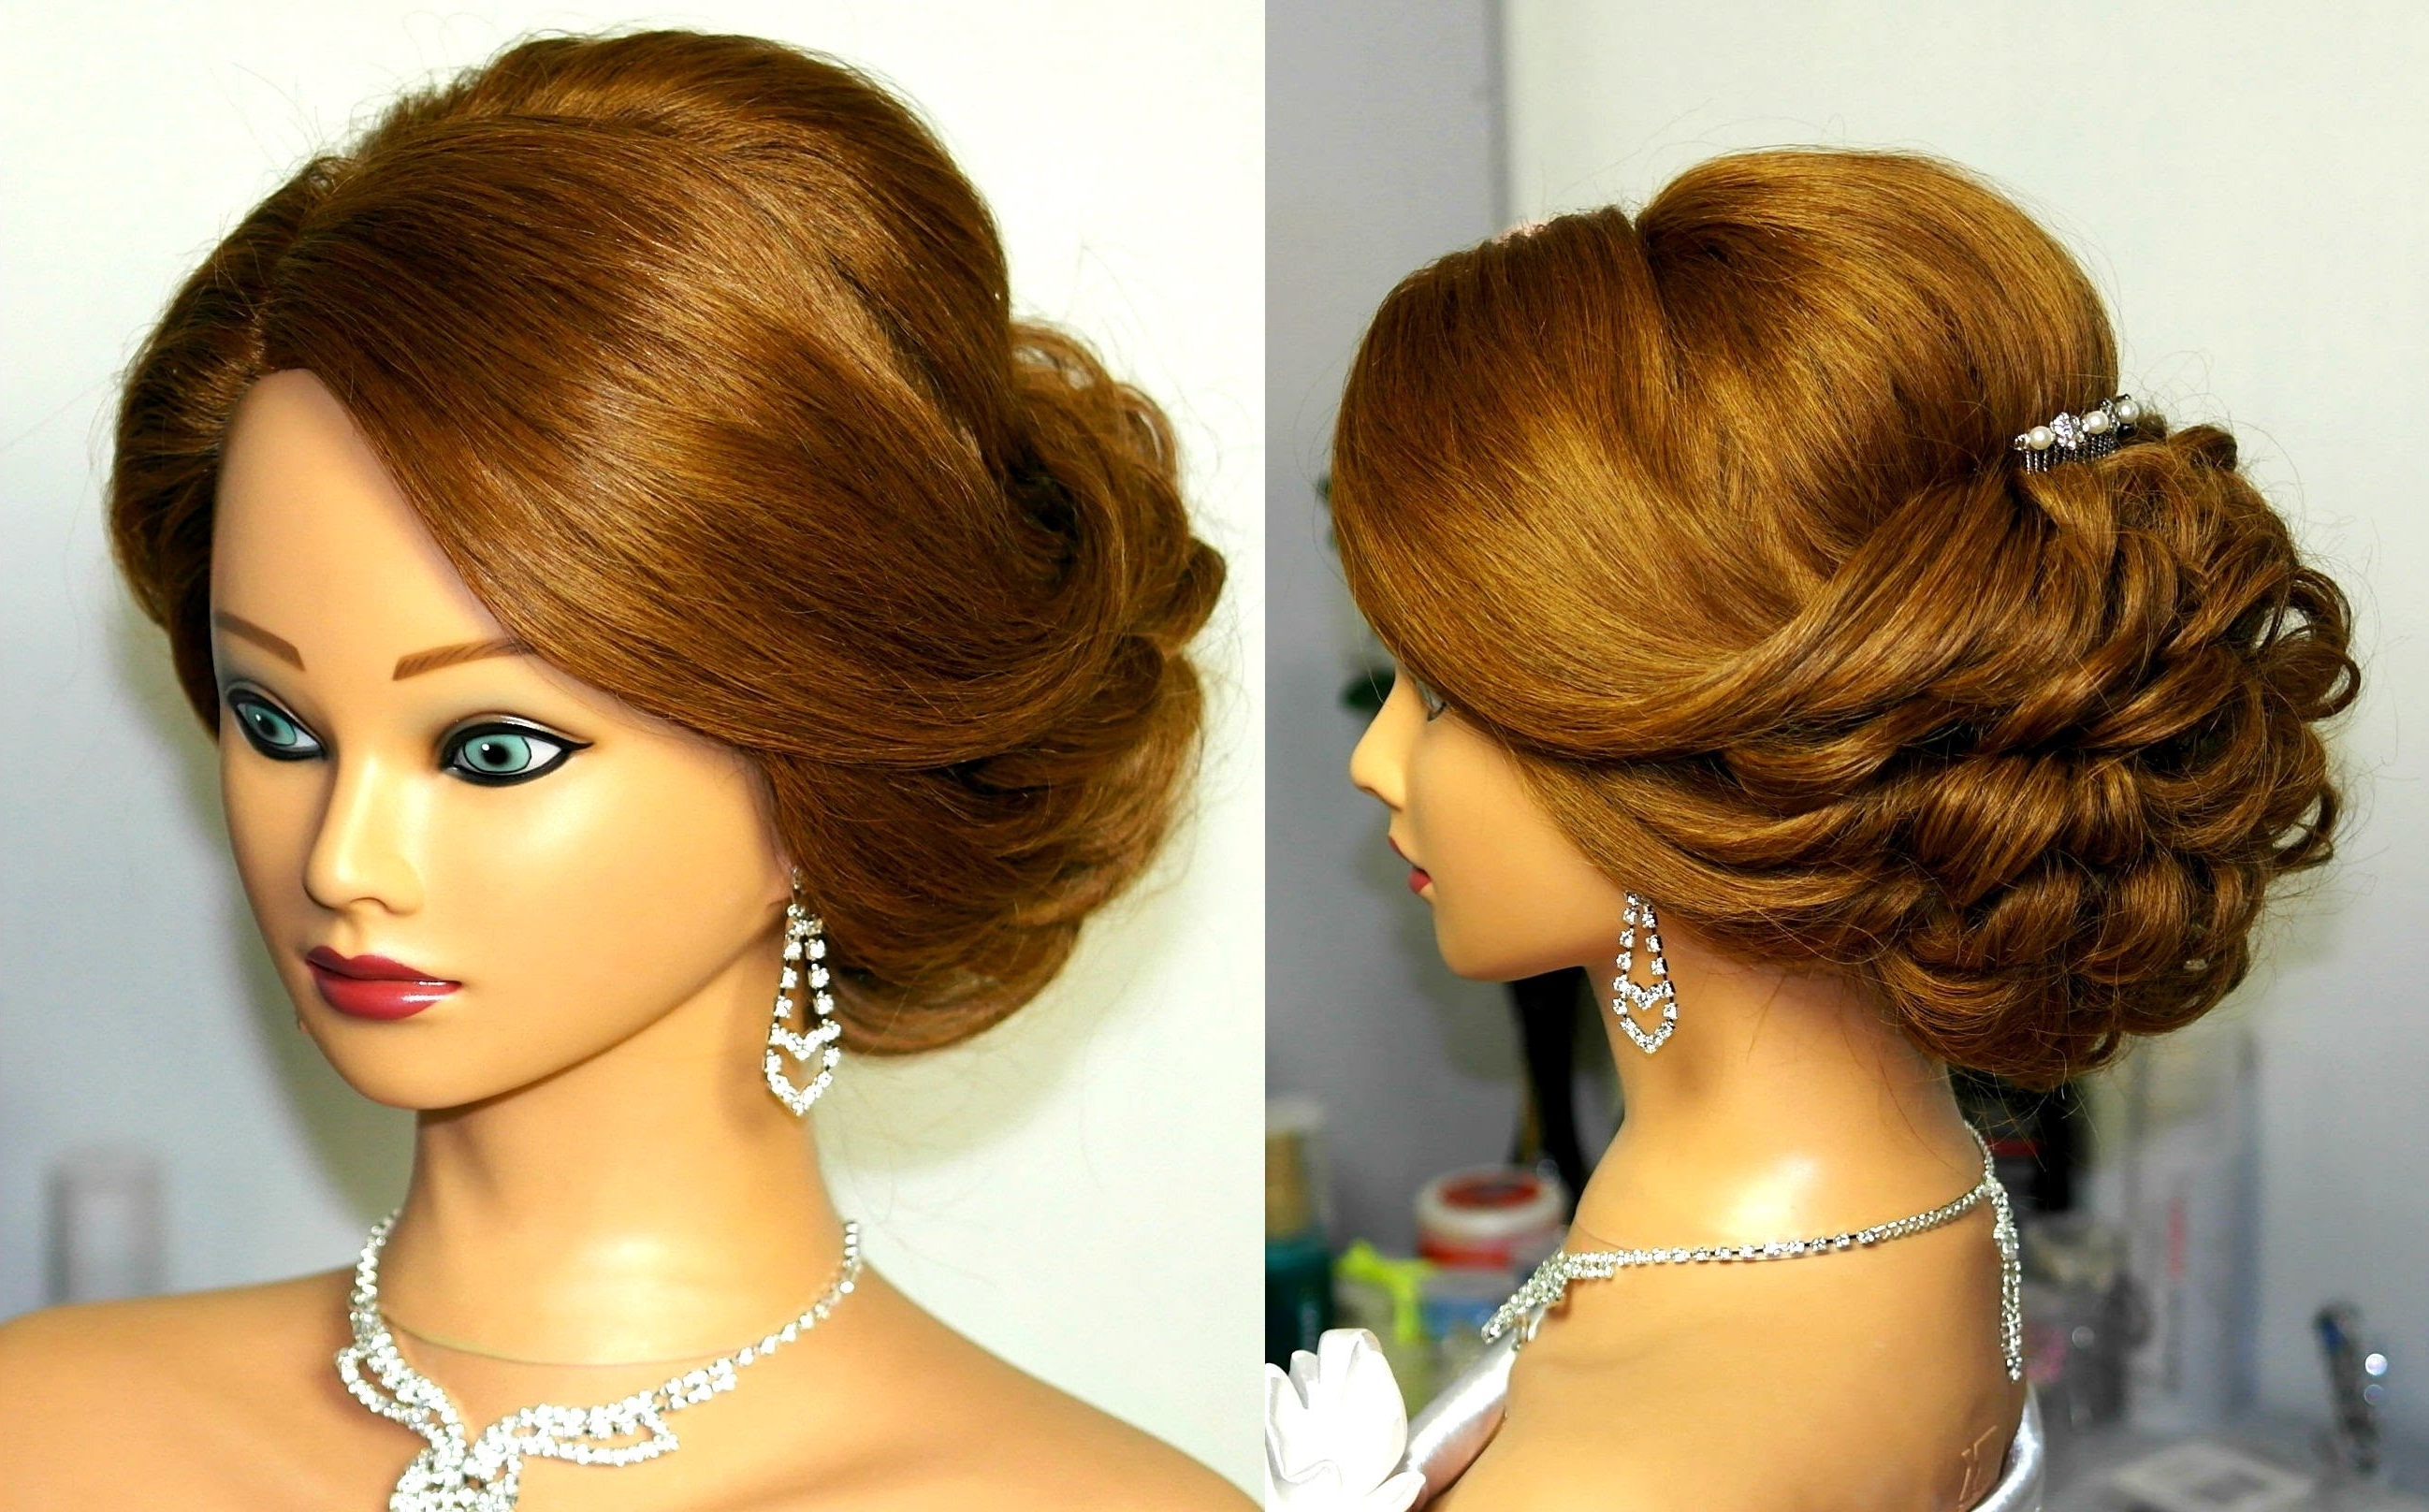 Bridal Updo. Romantic Hairstyle For Medium Hair (View 5 of 15)